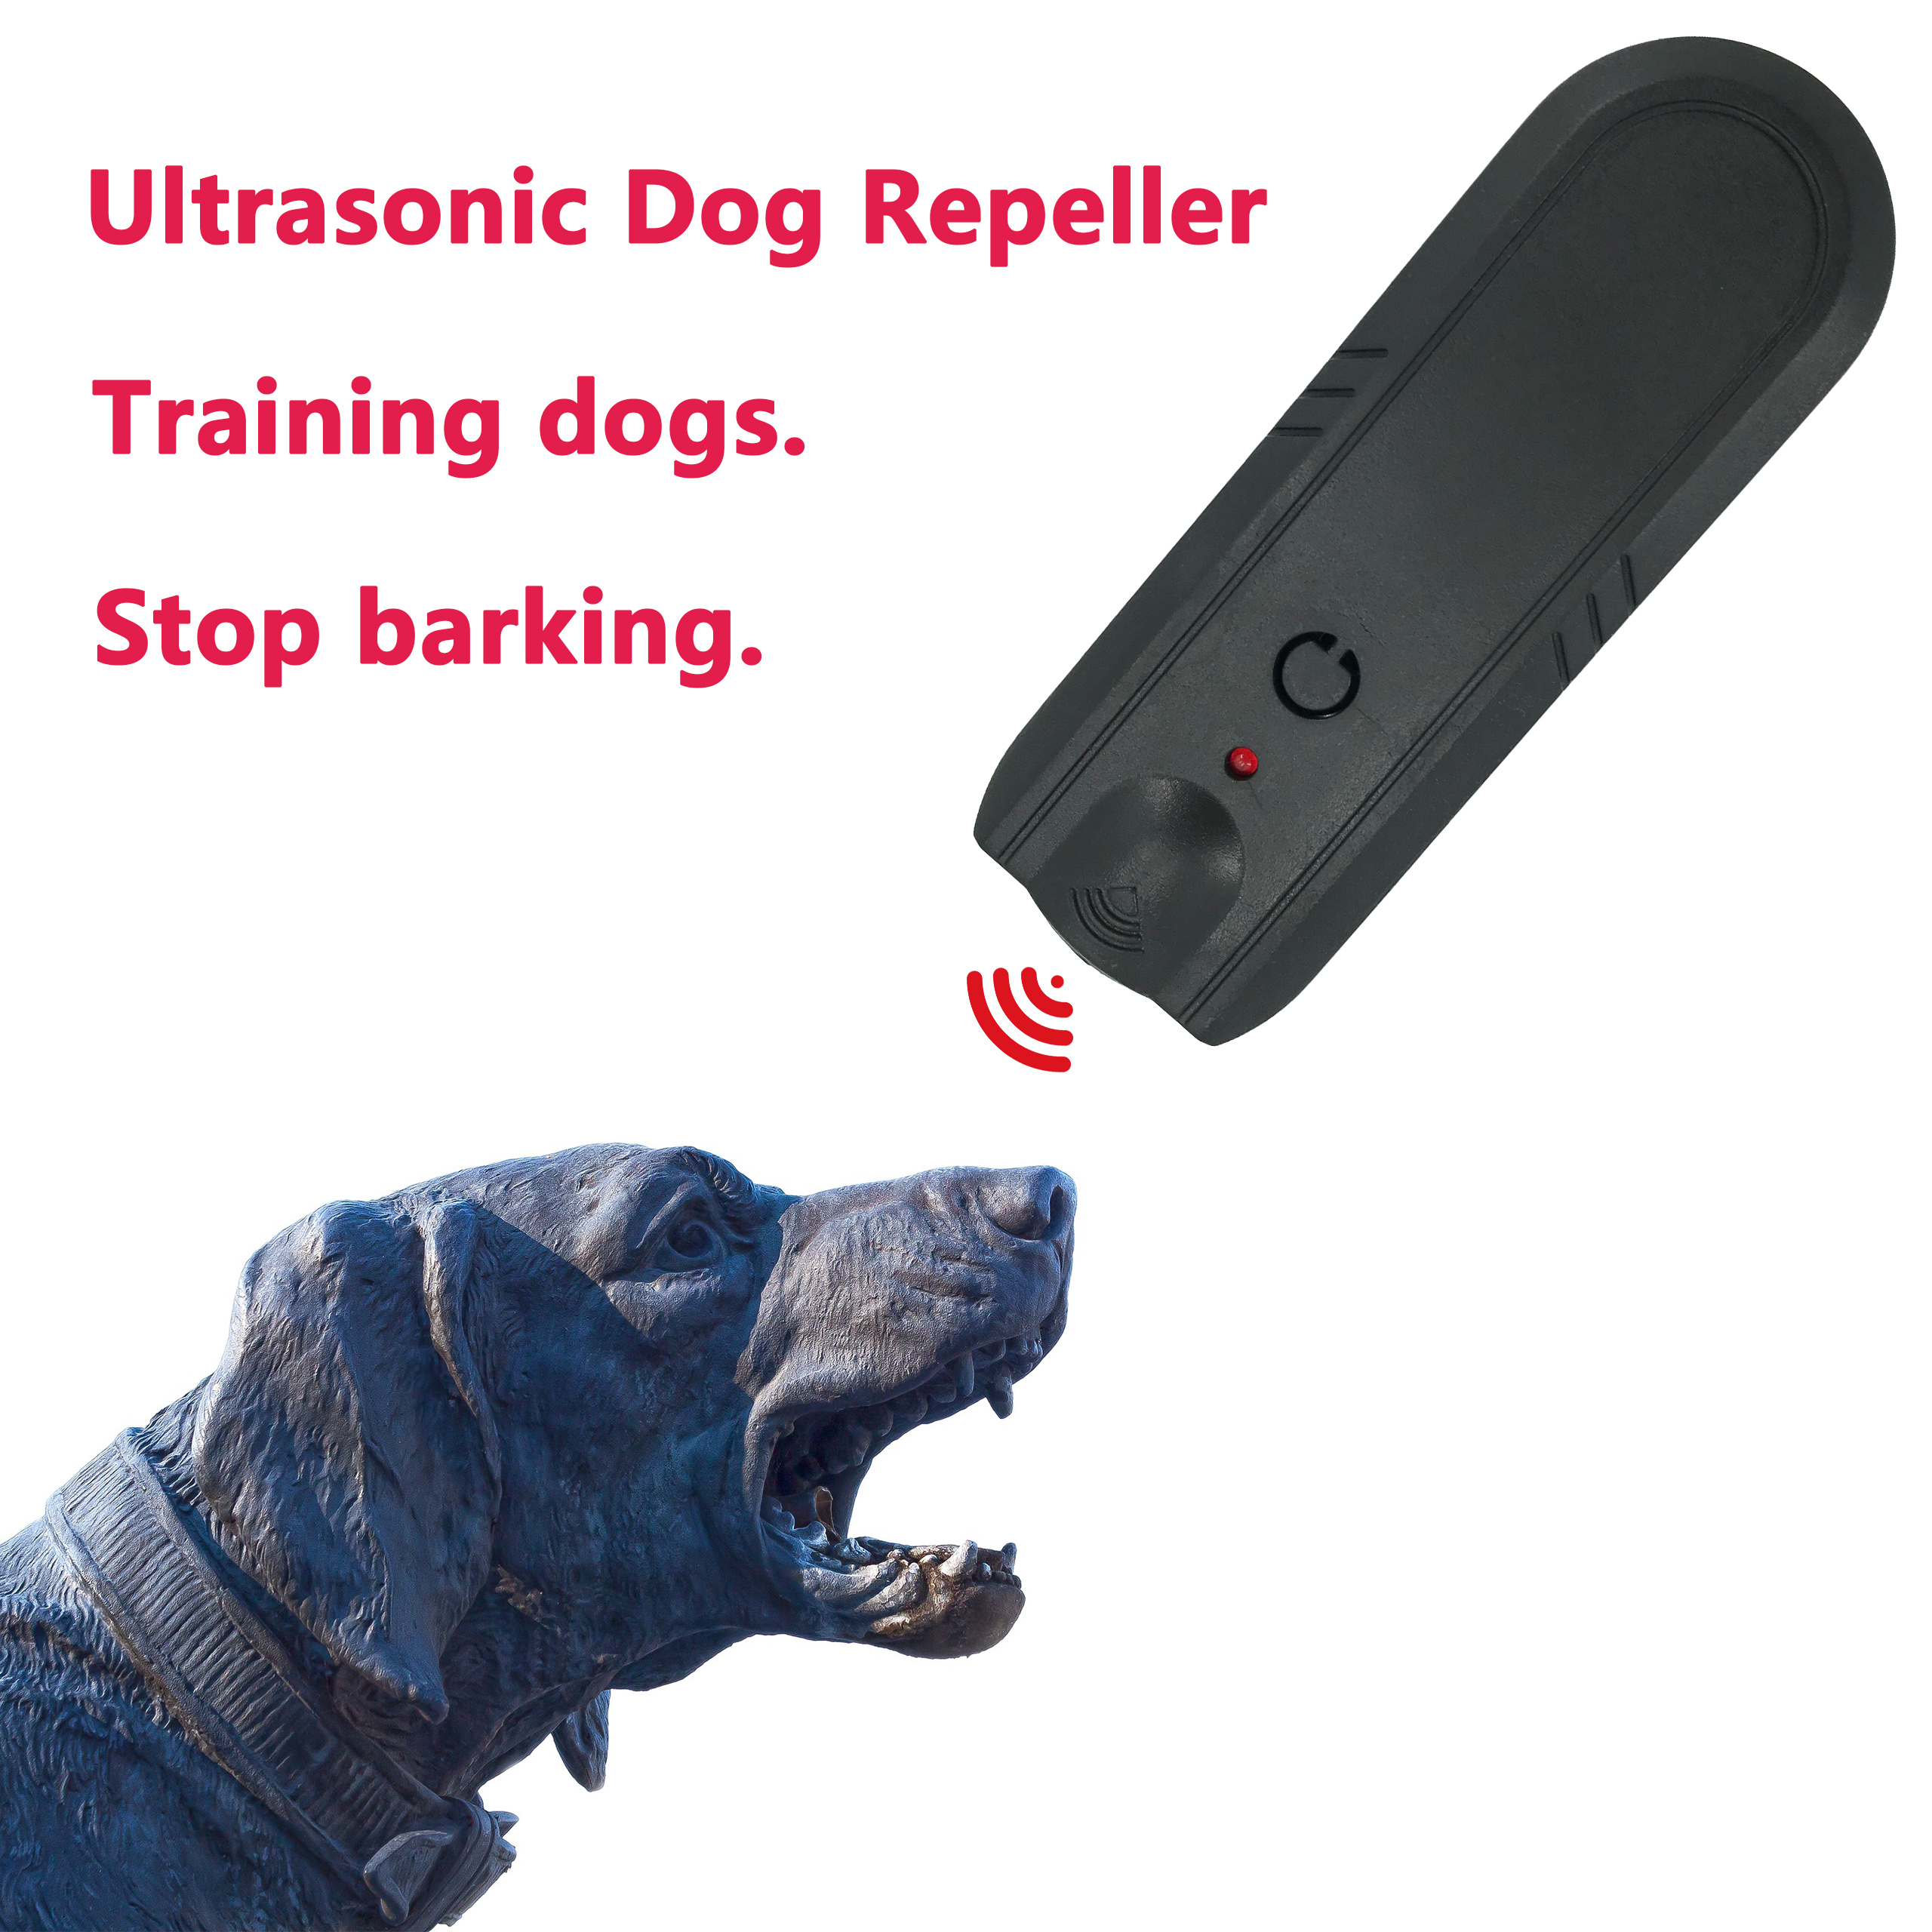 Ultrasonic Dog Repeller and Trainer Device Animal Repeller Dog Stop Barking Traning Dogs Electronic Repeller Outdoor